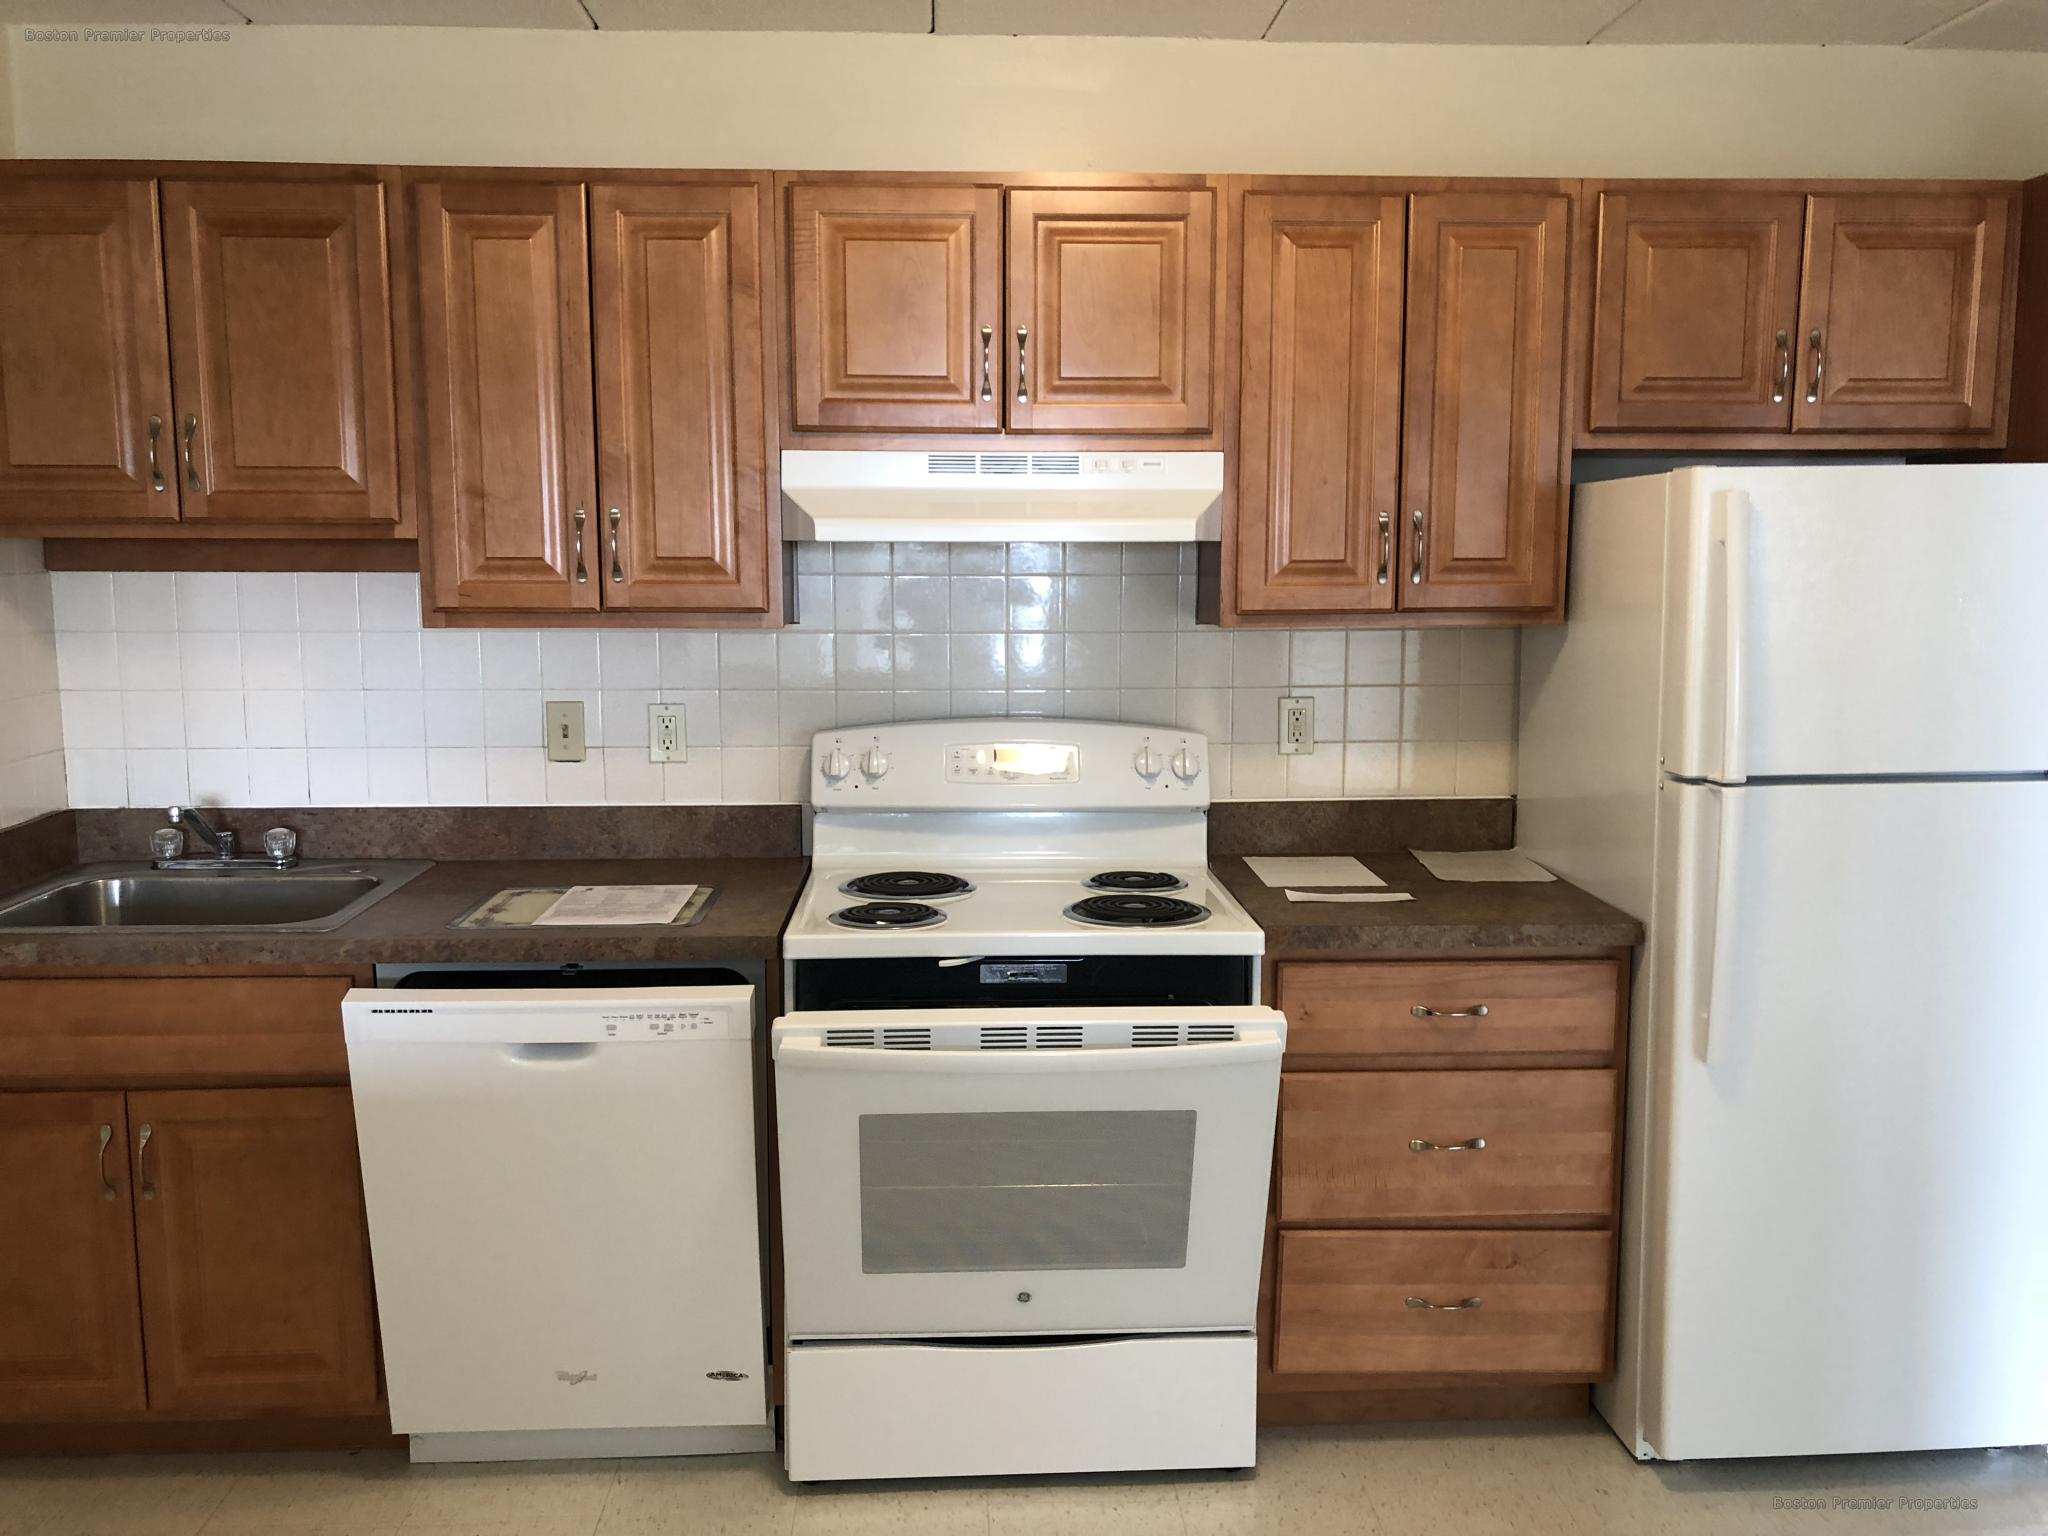 1 Bd, Eat-in Kitchen, Laundry in Building, Non Smoking Unit, Last